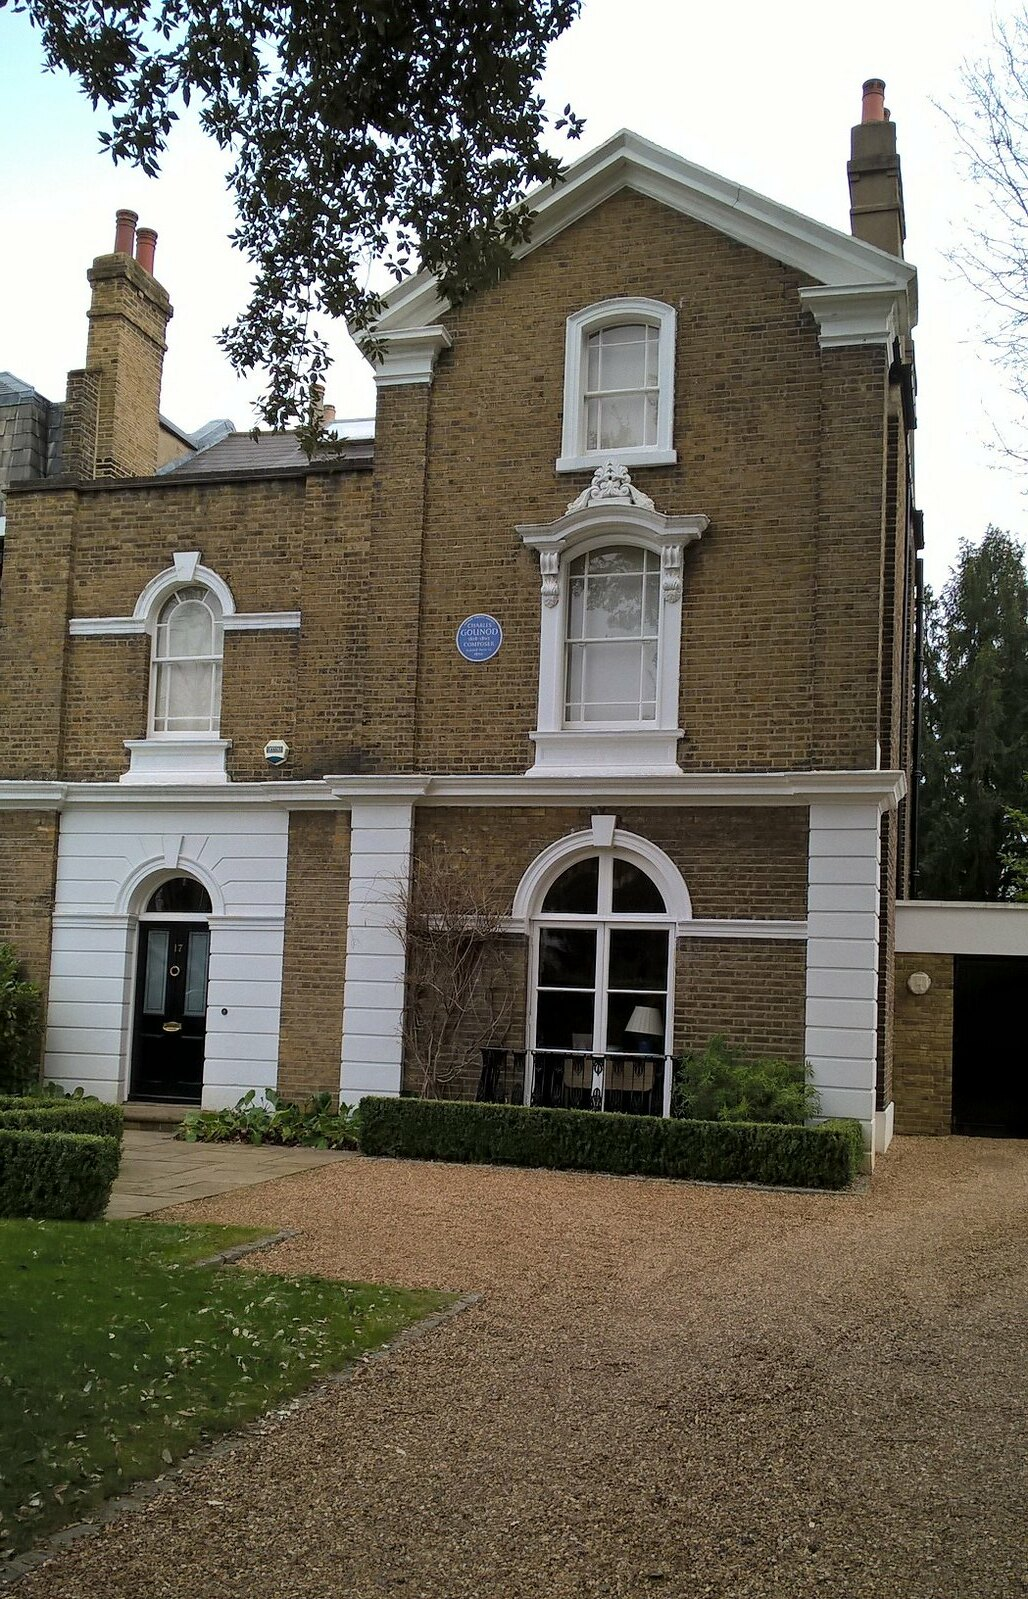 Gounod once lived here. Blackheath Composer of Faust/Orpheus in the Underground ?